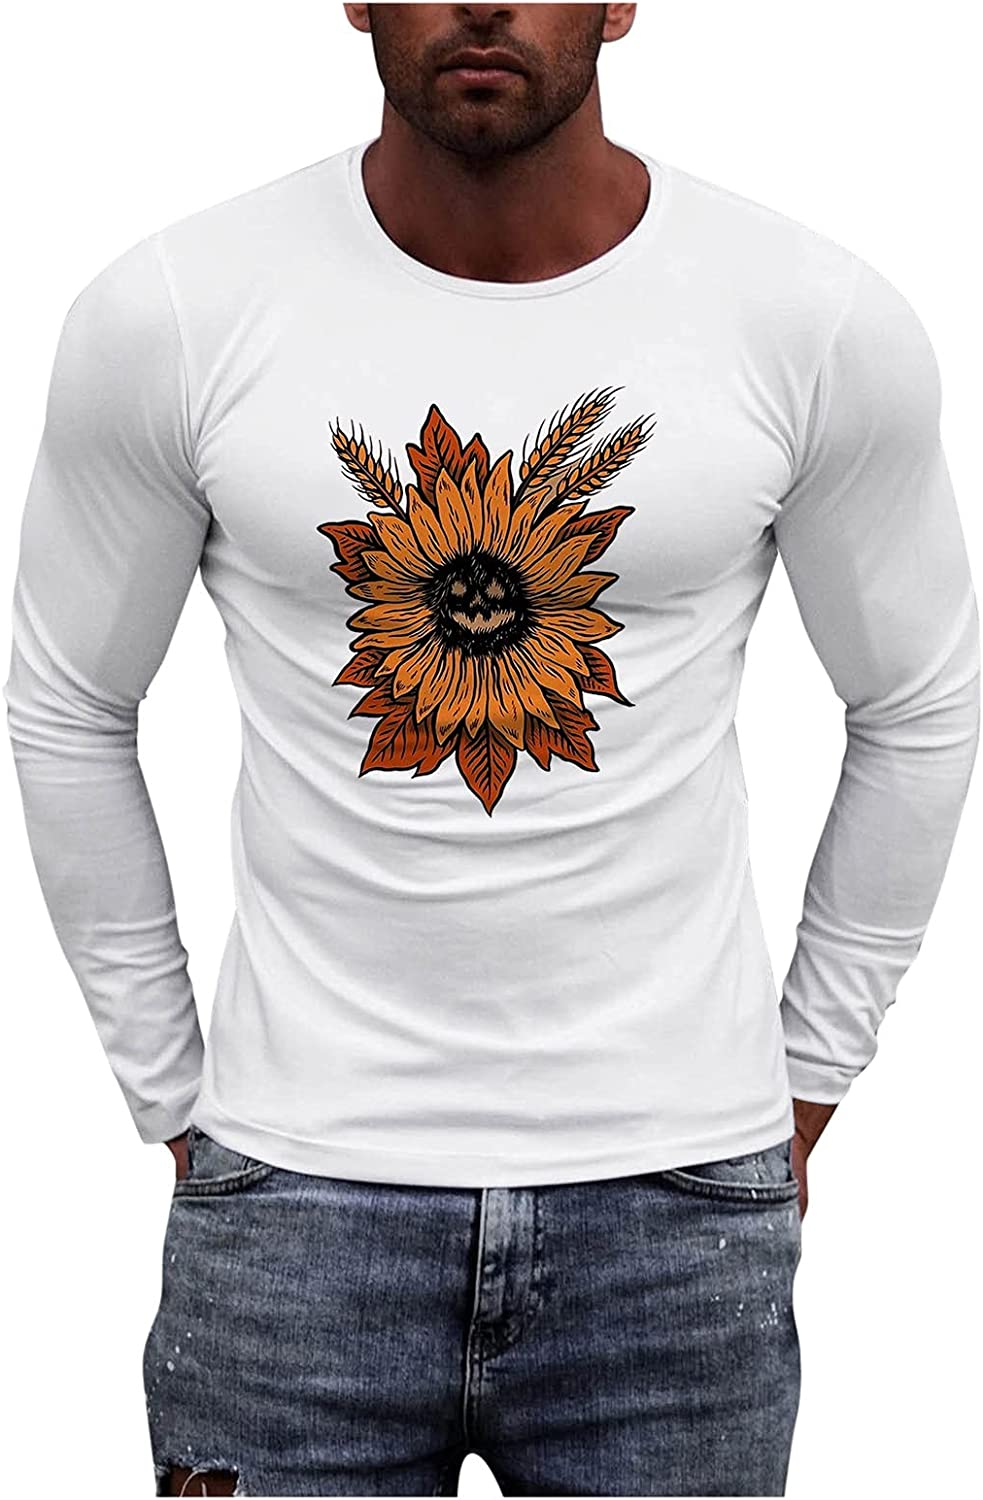 BEUU Mens Athletic Shirts Long Sleeve Sports Gym Workout T-Shirt Regular Fit Graphic Classic Tops Pullover Sweatshirts